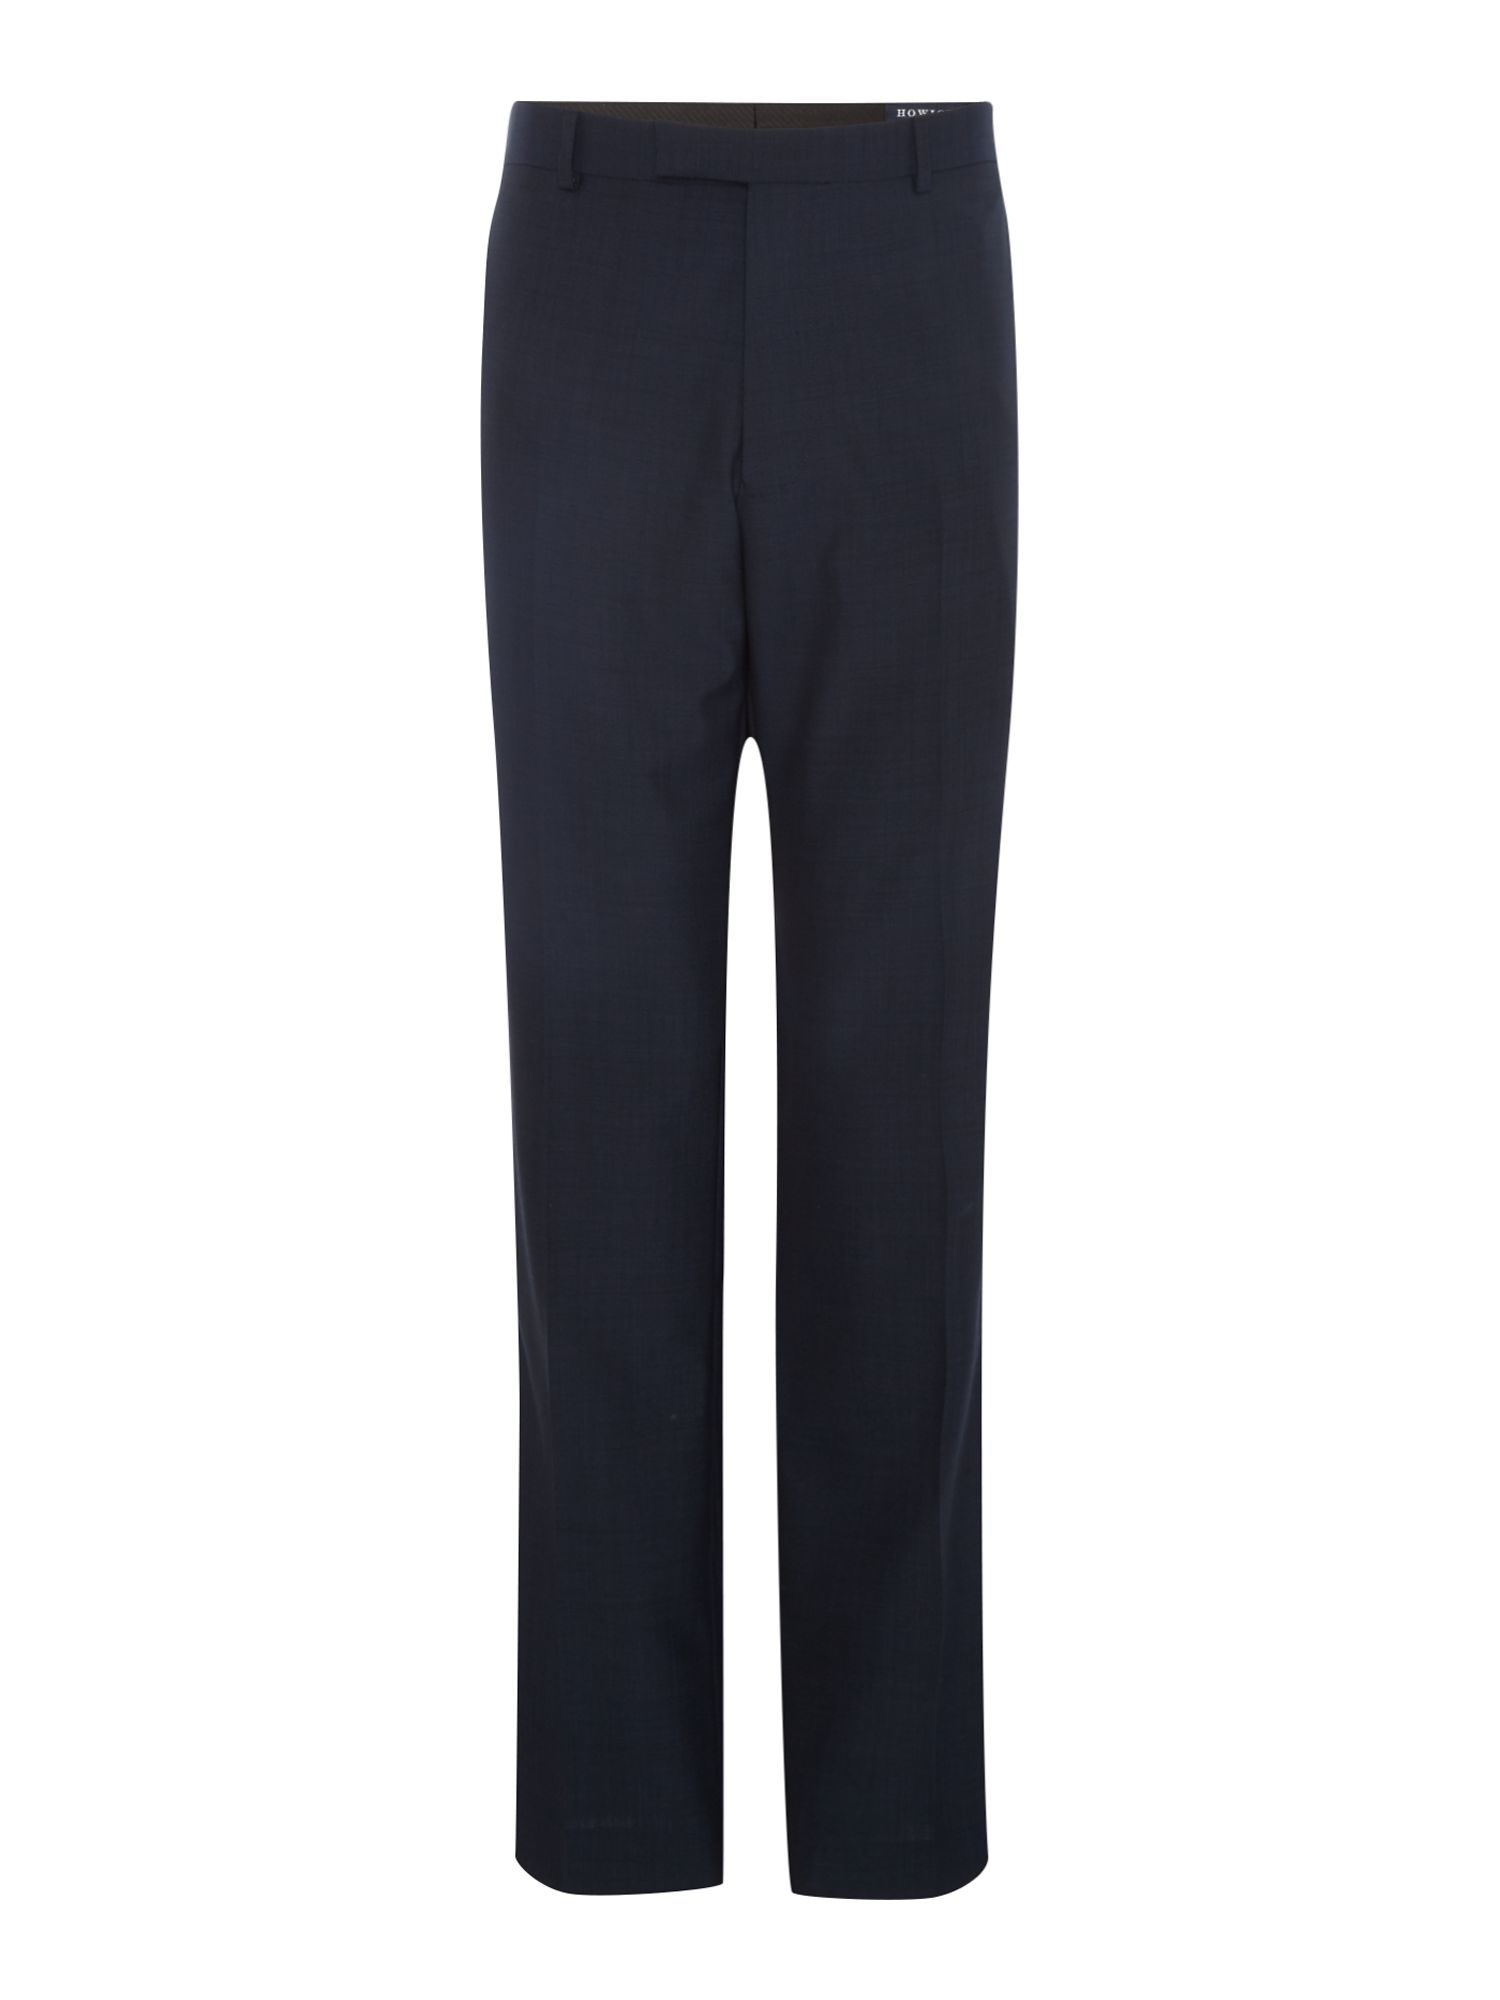 Men's Howick Tailored Delaware suit trousers, Navy